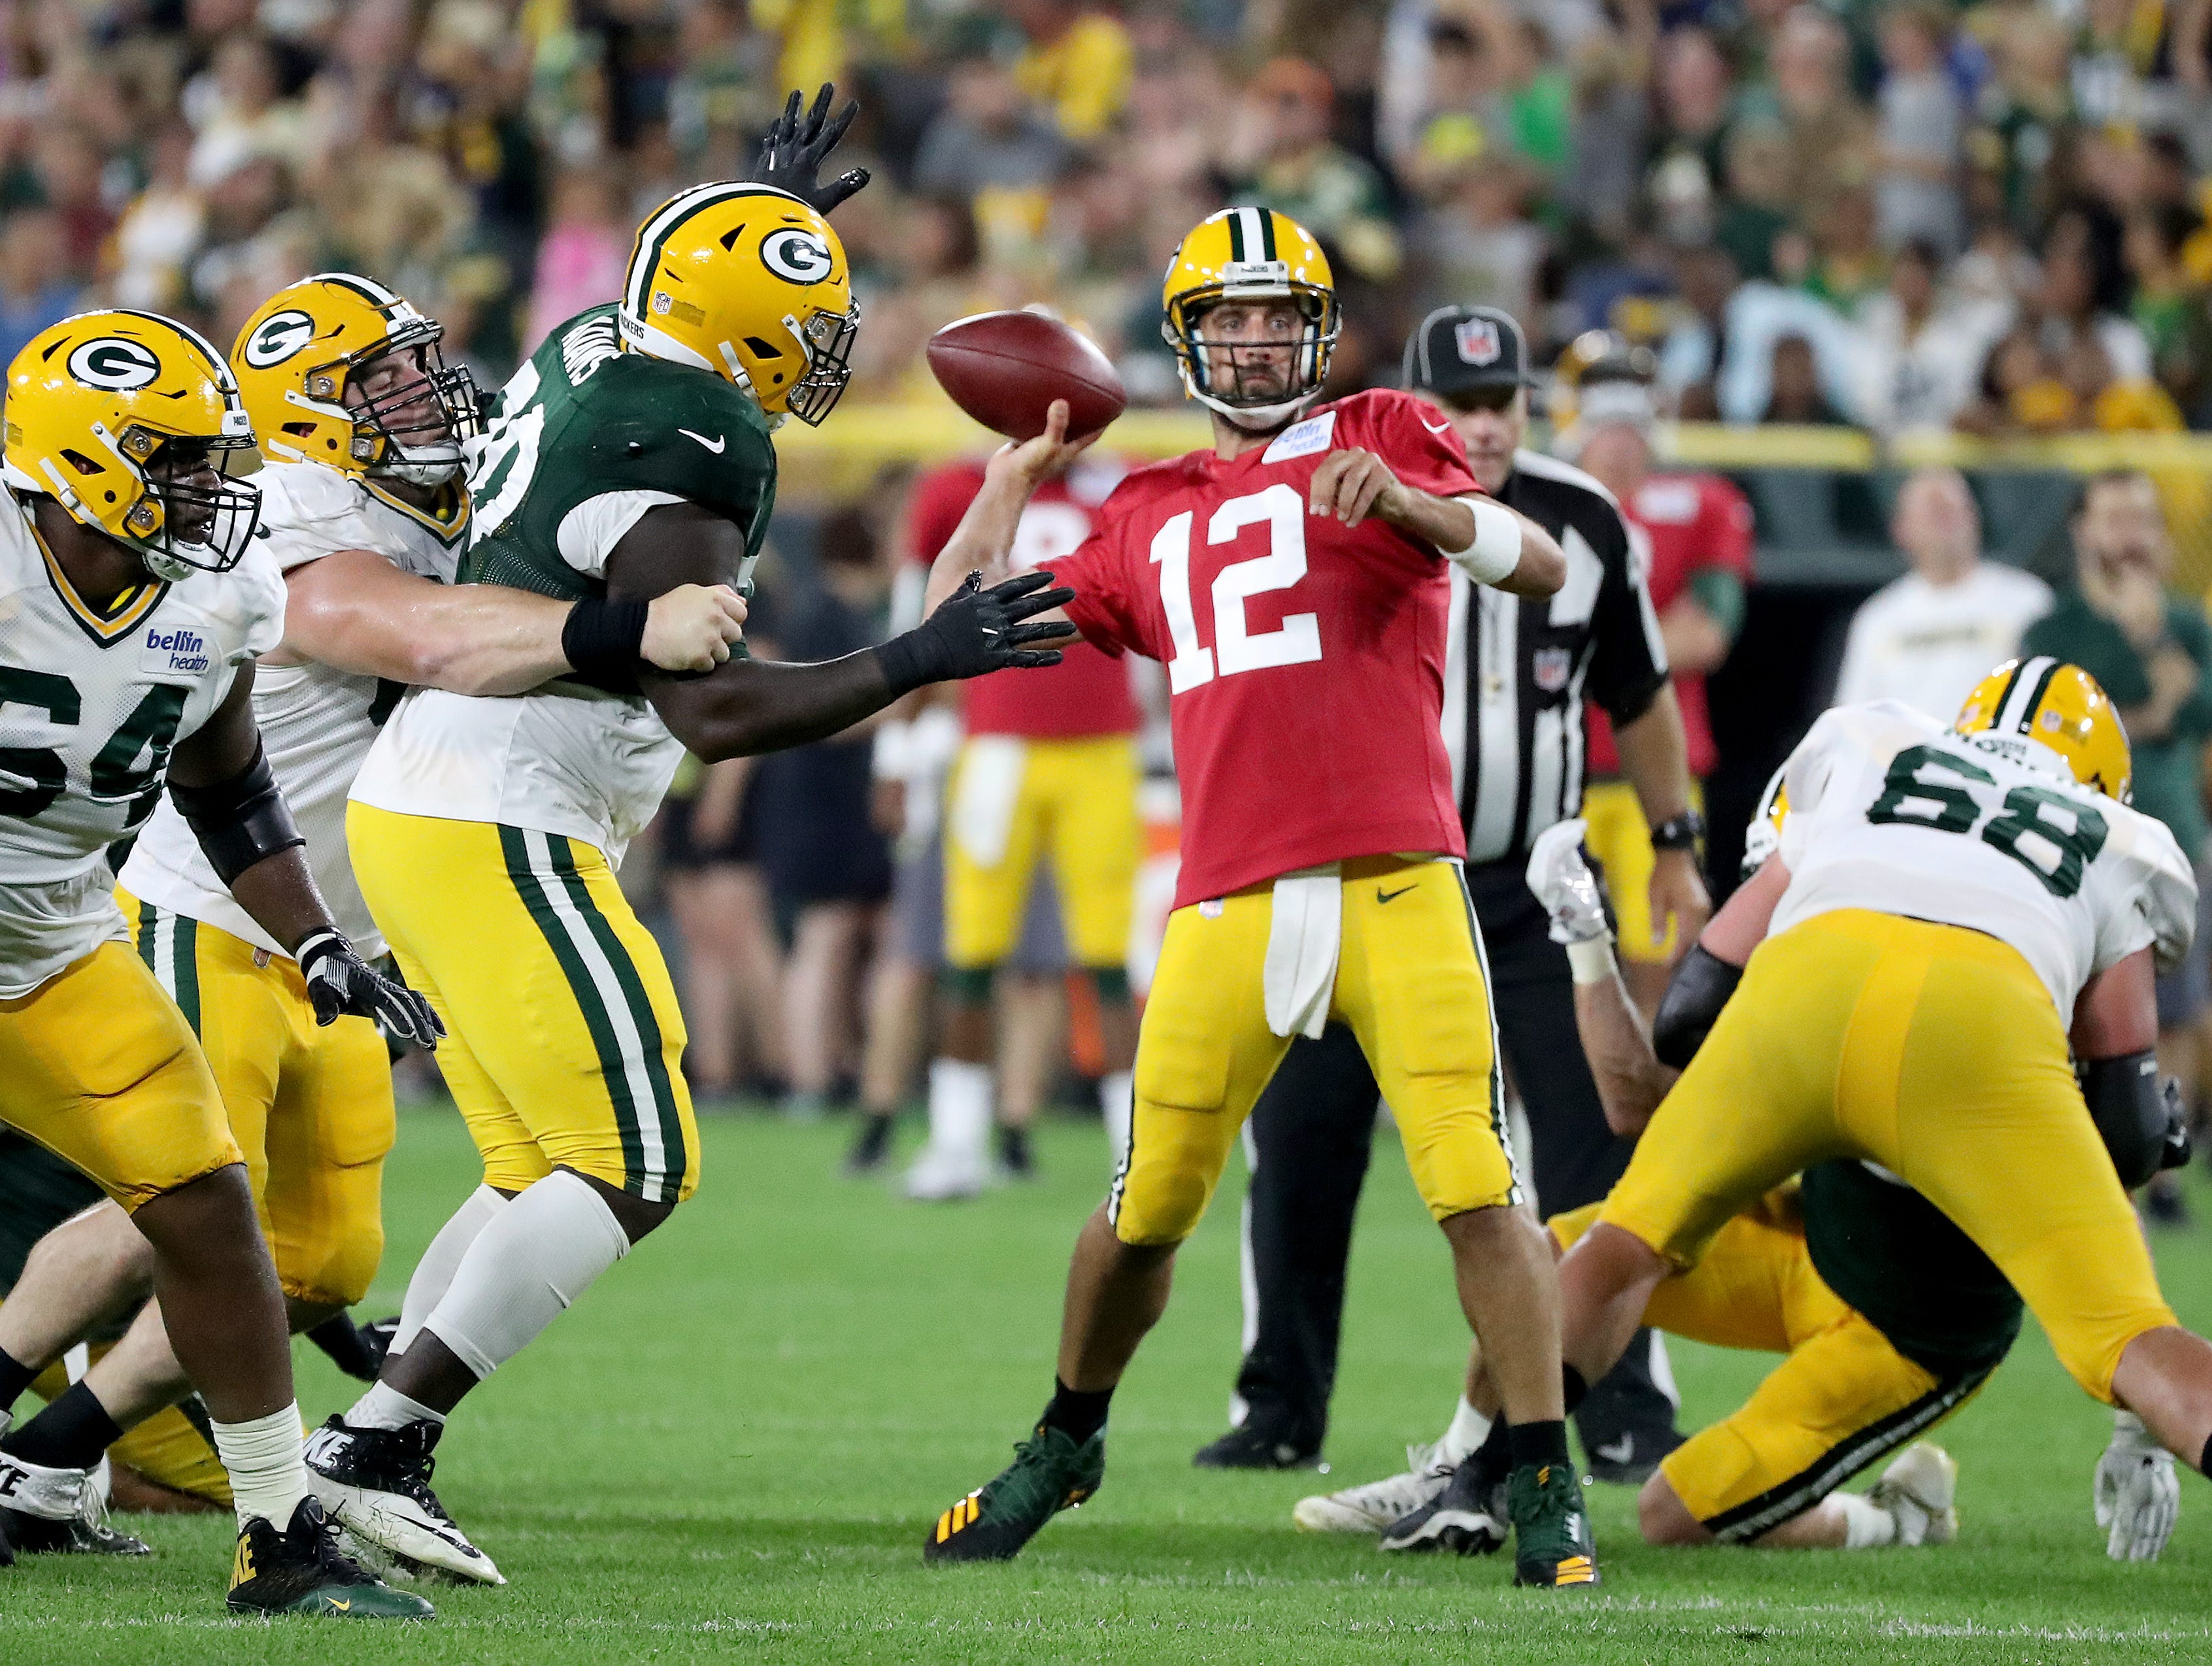 Green Bay Packers quarterback Aaron Rodgers (12) throws long from the pocket during Green Bay Packers Family Night  Saturday, August 4, 2018 at Lambeau Field in Green Bay, Wis.,